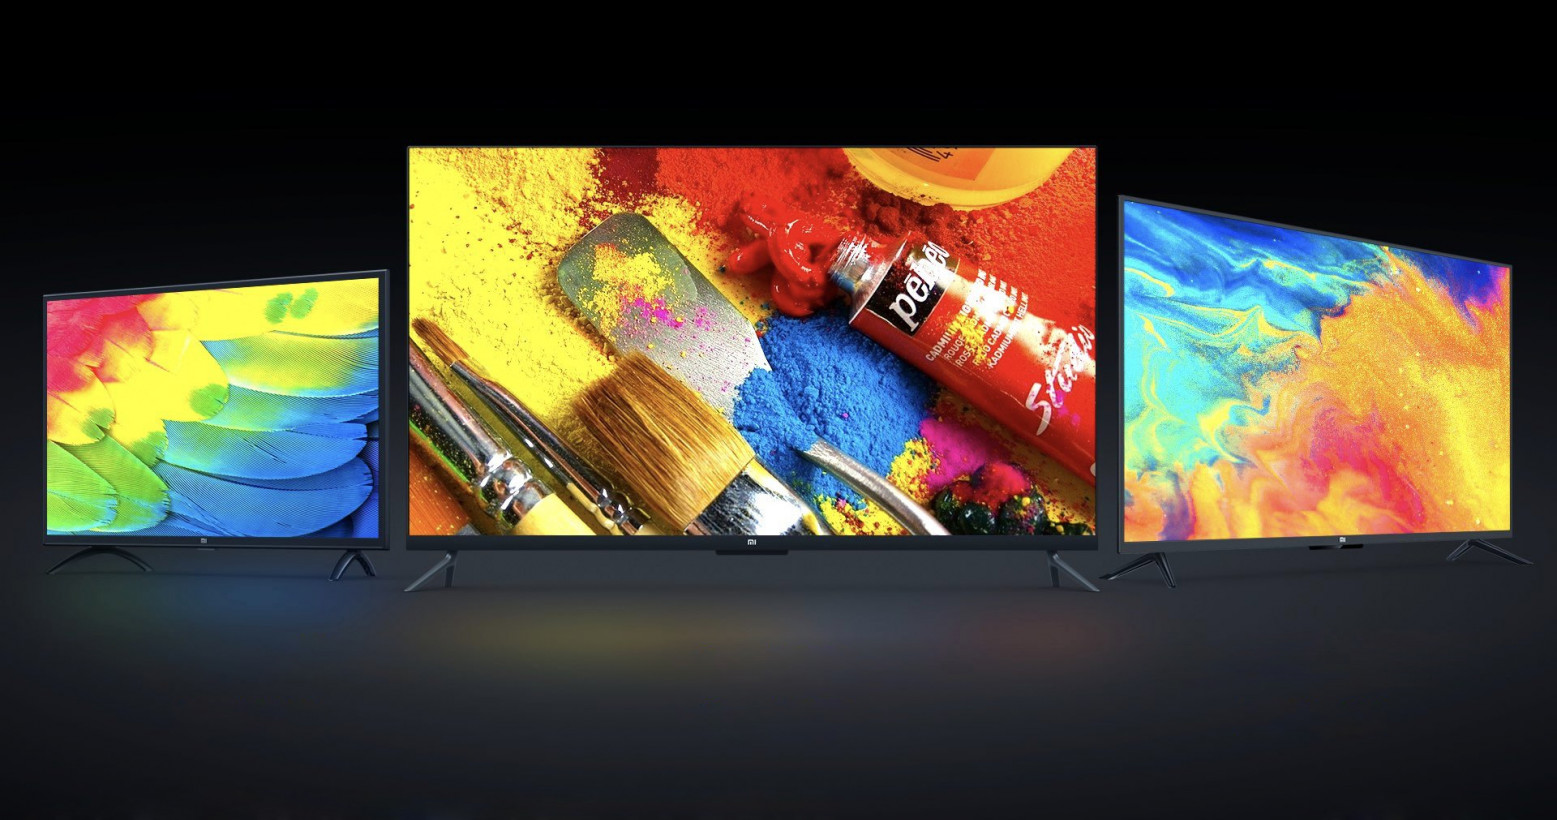 Xiaomi's new smart TVs are cheap and feature-rich, but can't